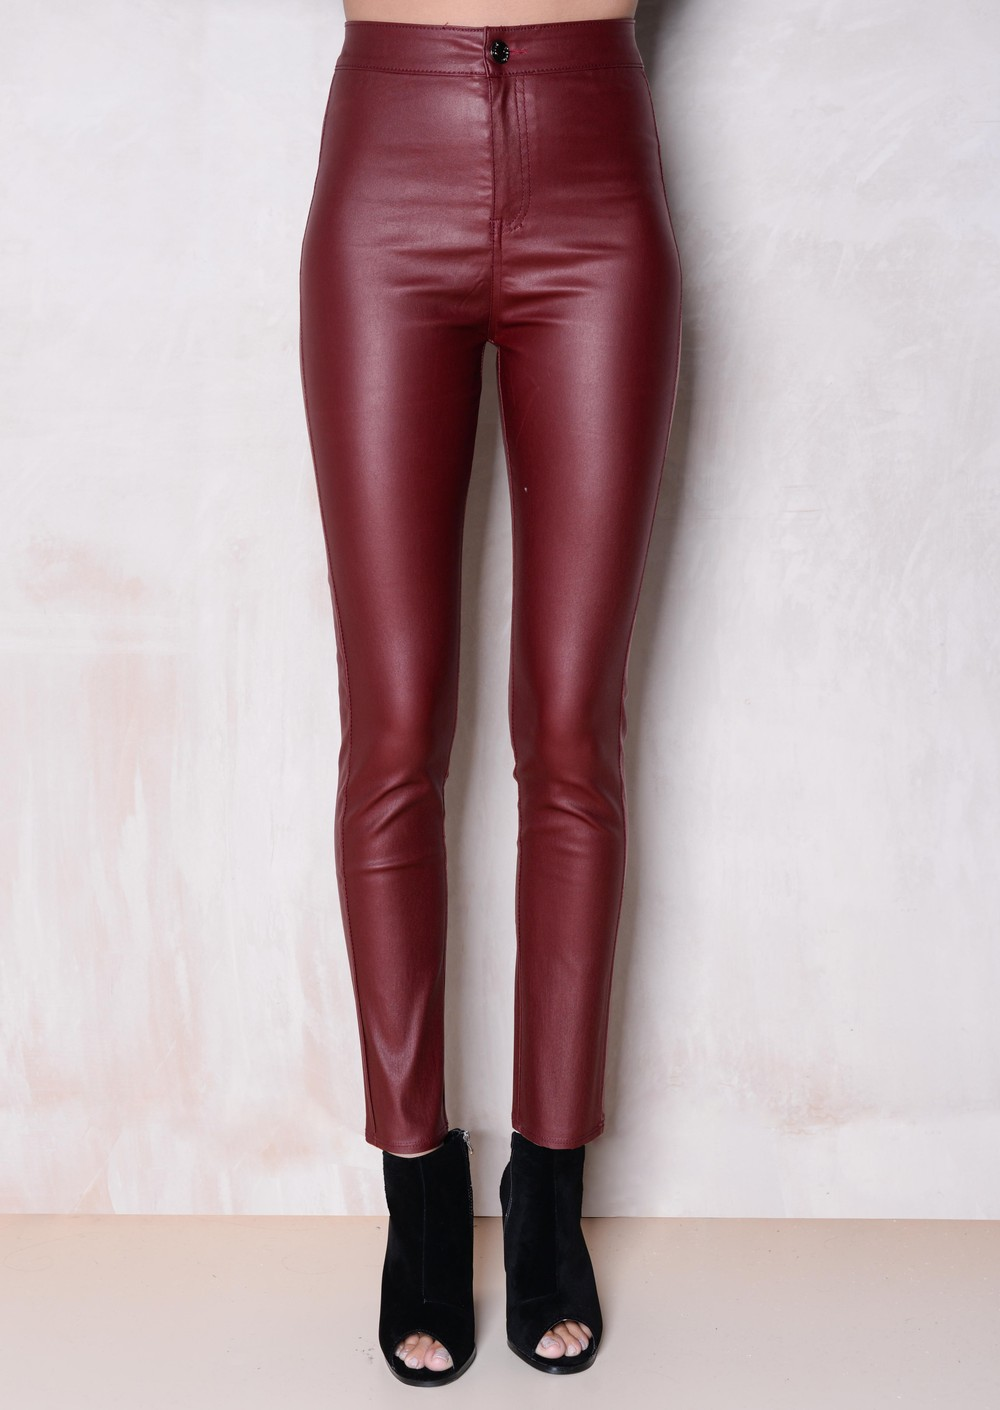 ... High Waisted Faux Leather Look Jeans Burgundy. More From - High Waisted Faux Leather Look Jeans Burgundy